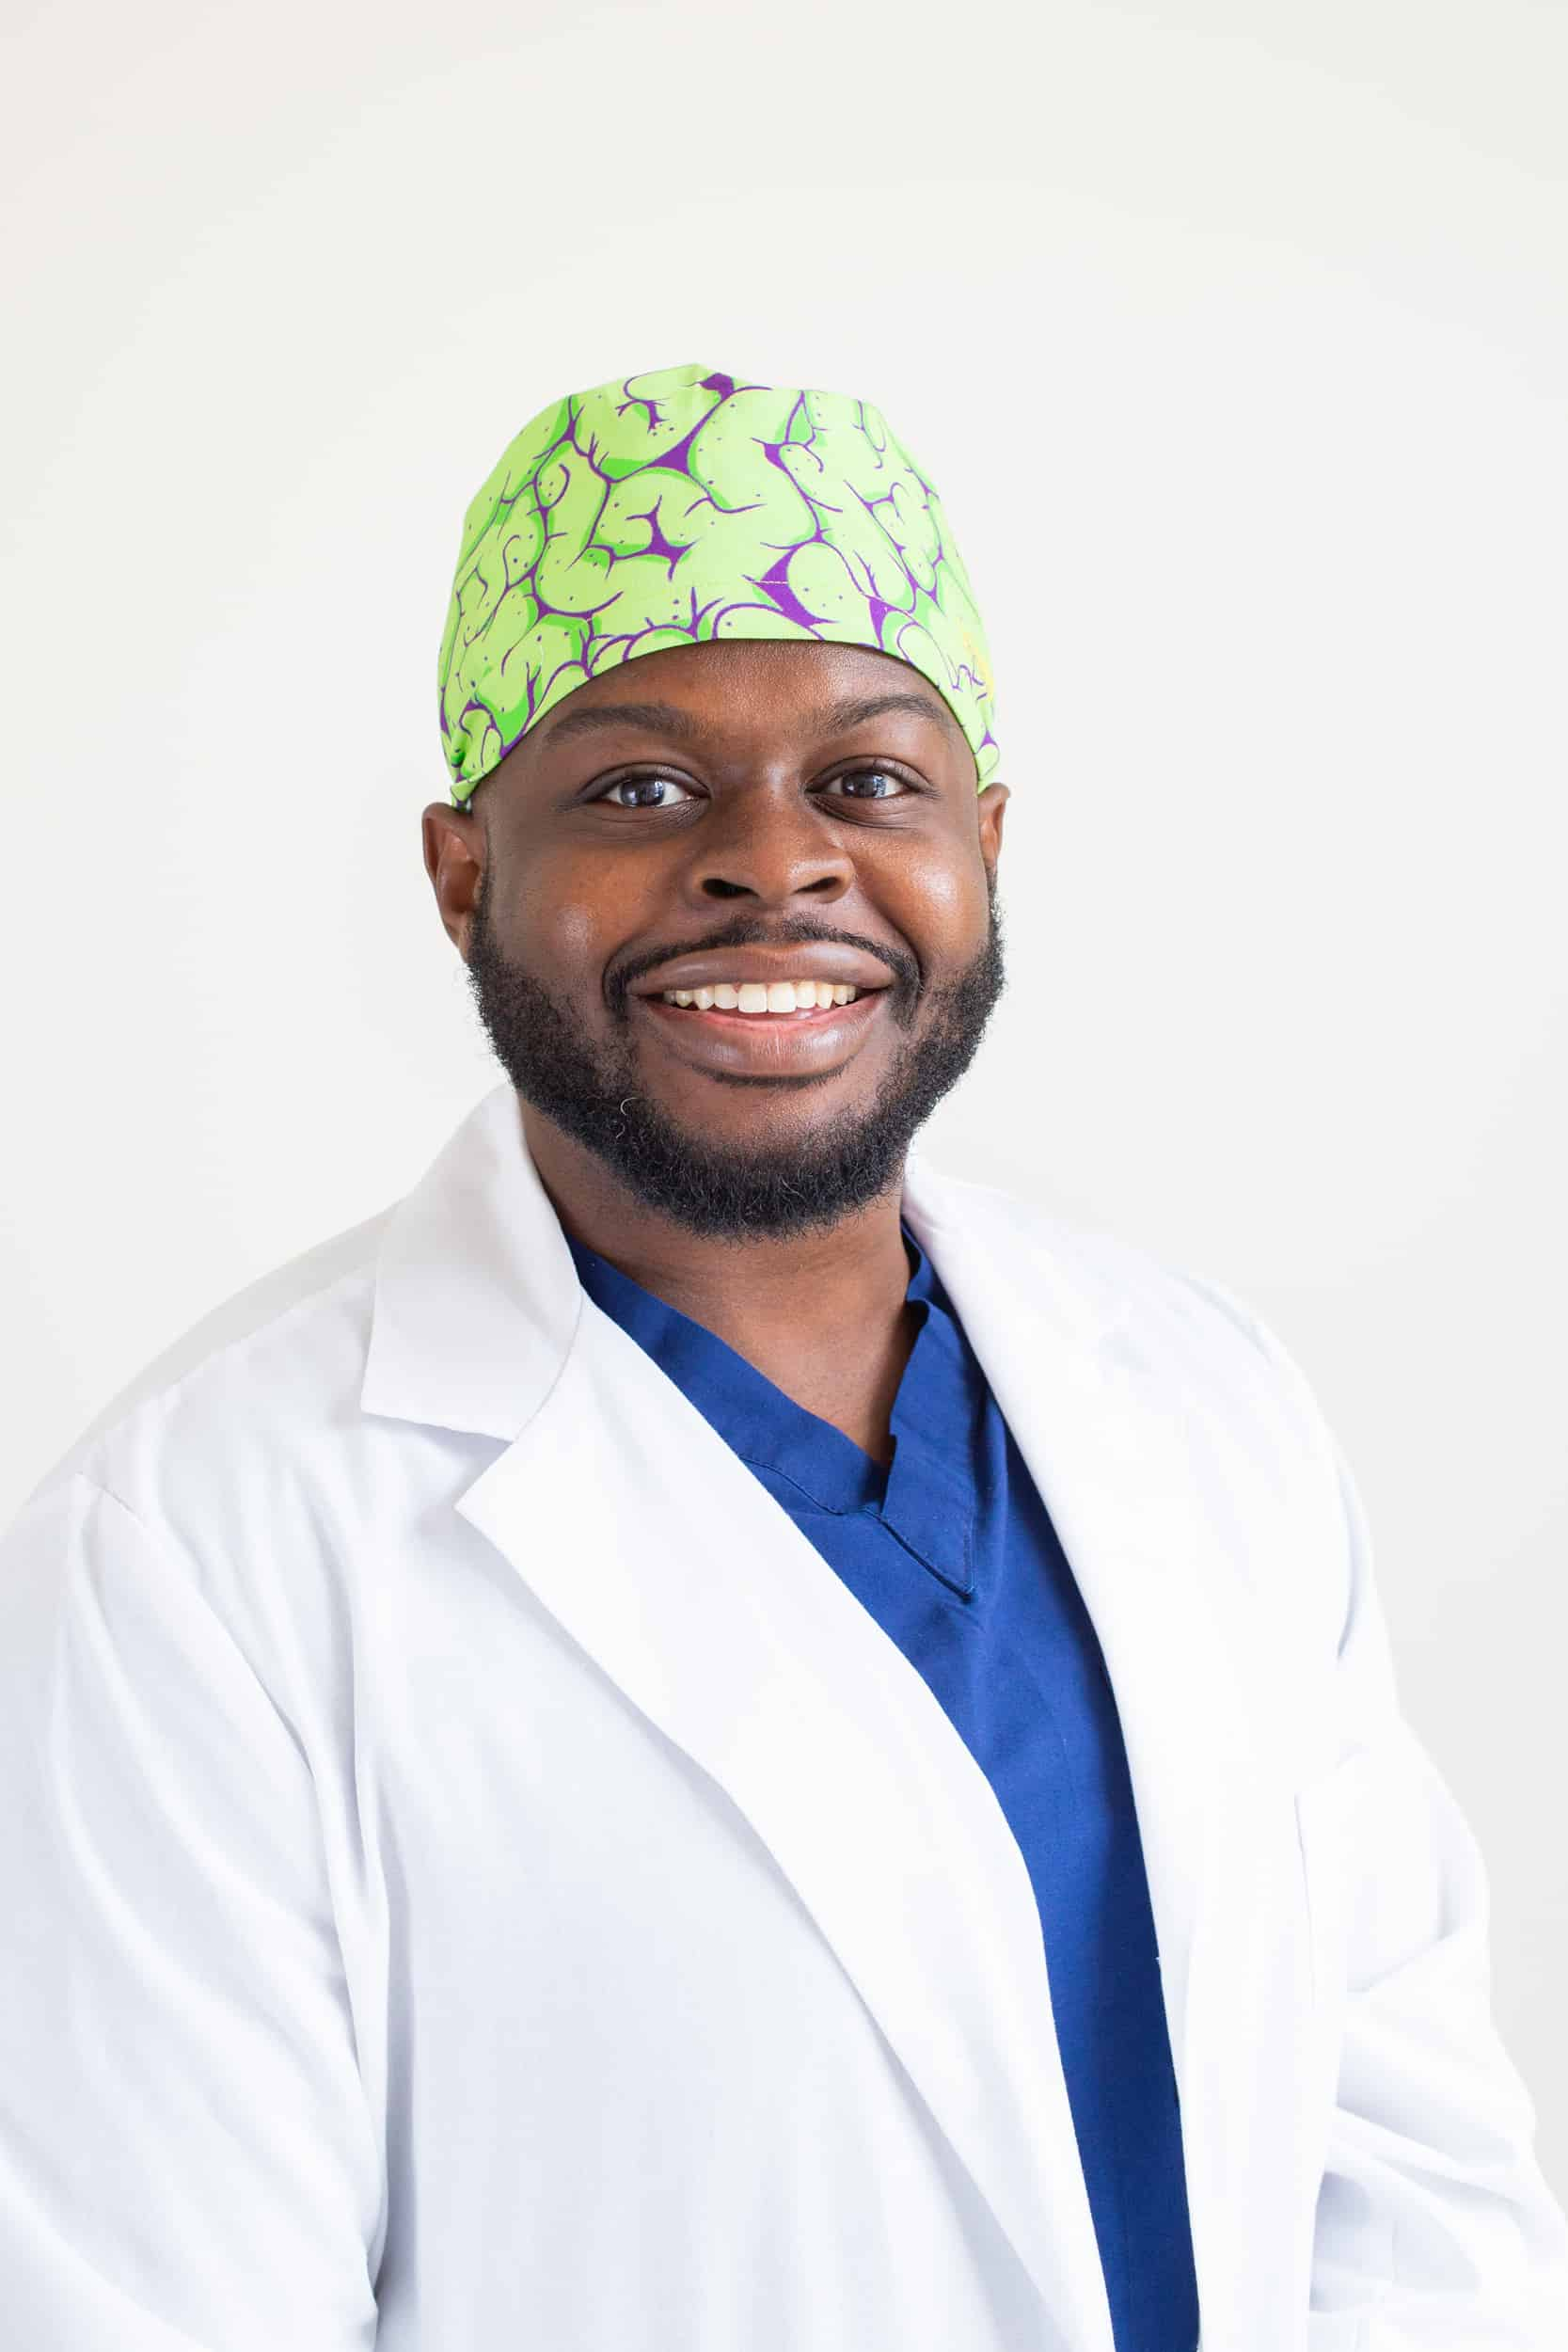 Portraits Capitol Dental Associates Washington D.C. 2018 55 - Dr. Israel Saintil